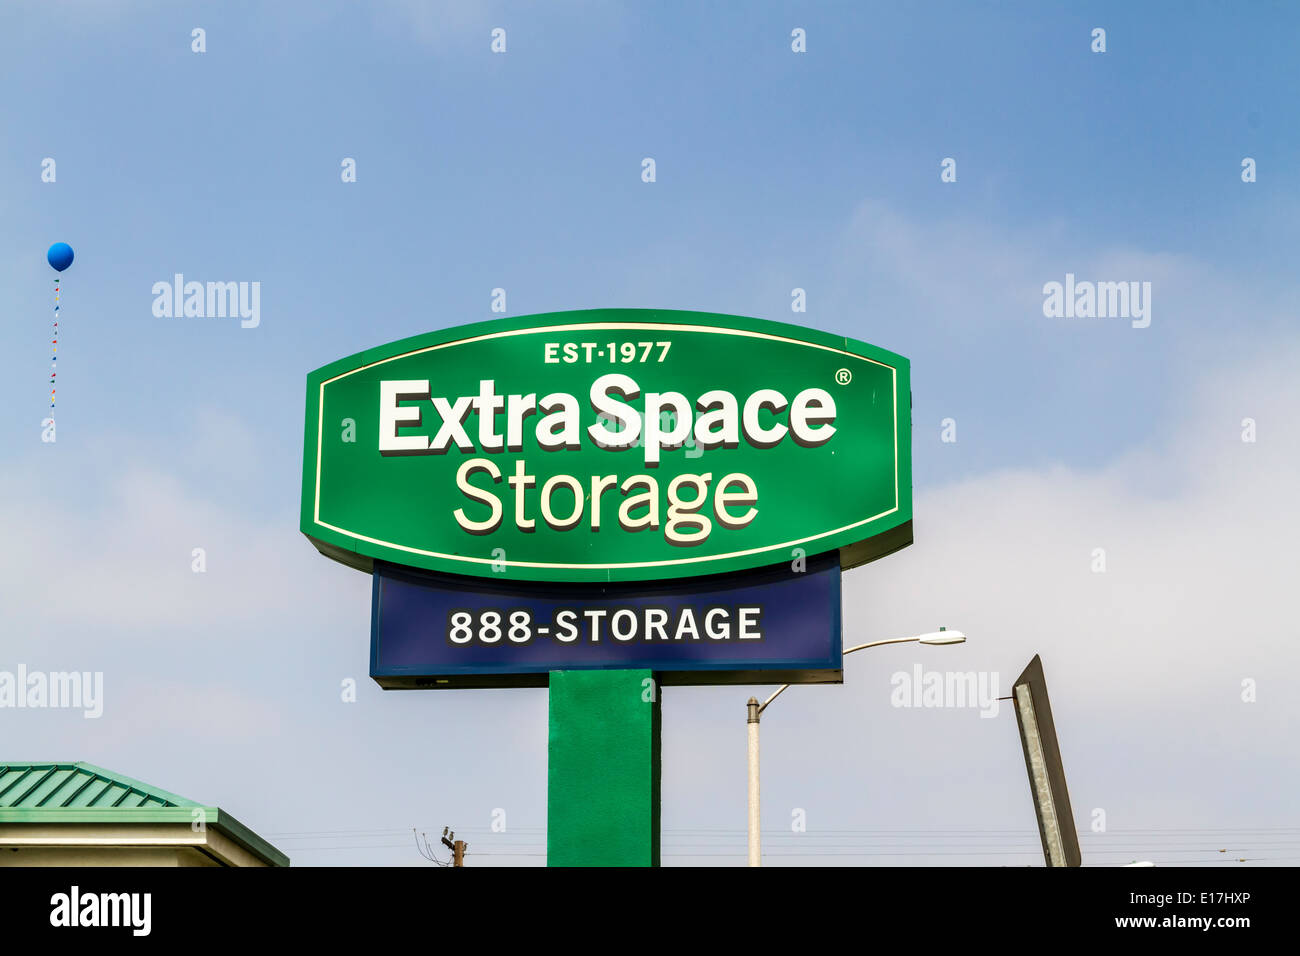 Extra Space personal storage location in Fontana California - Stock Image